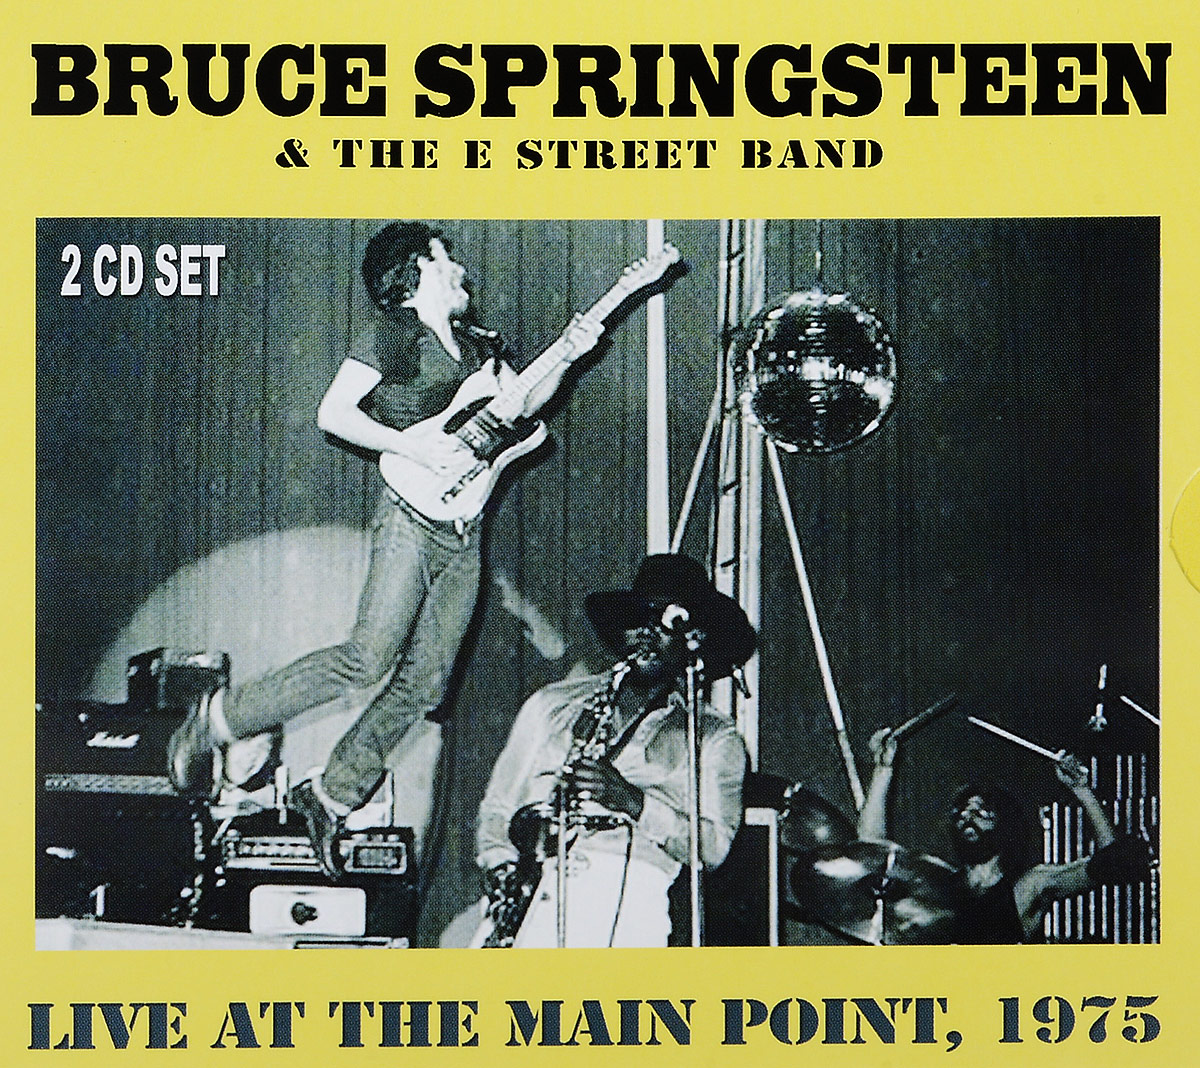 Брюс Спрингстин Bruce Springsteen. Live At The Main Point 1975 (2 CD) new original vb0 20mr a plc 24vdc 12 point input 8 point output main unit